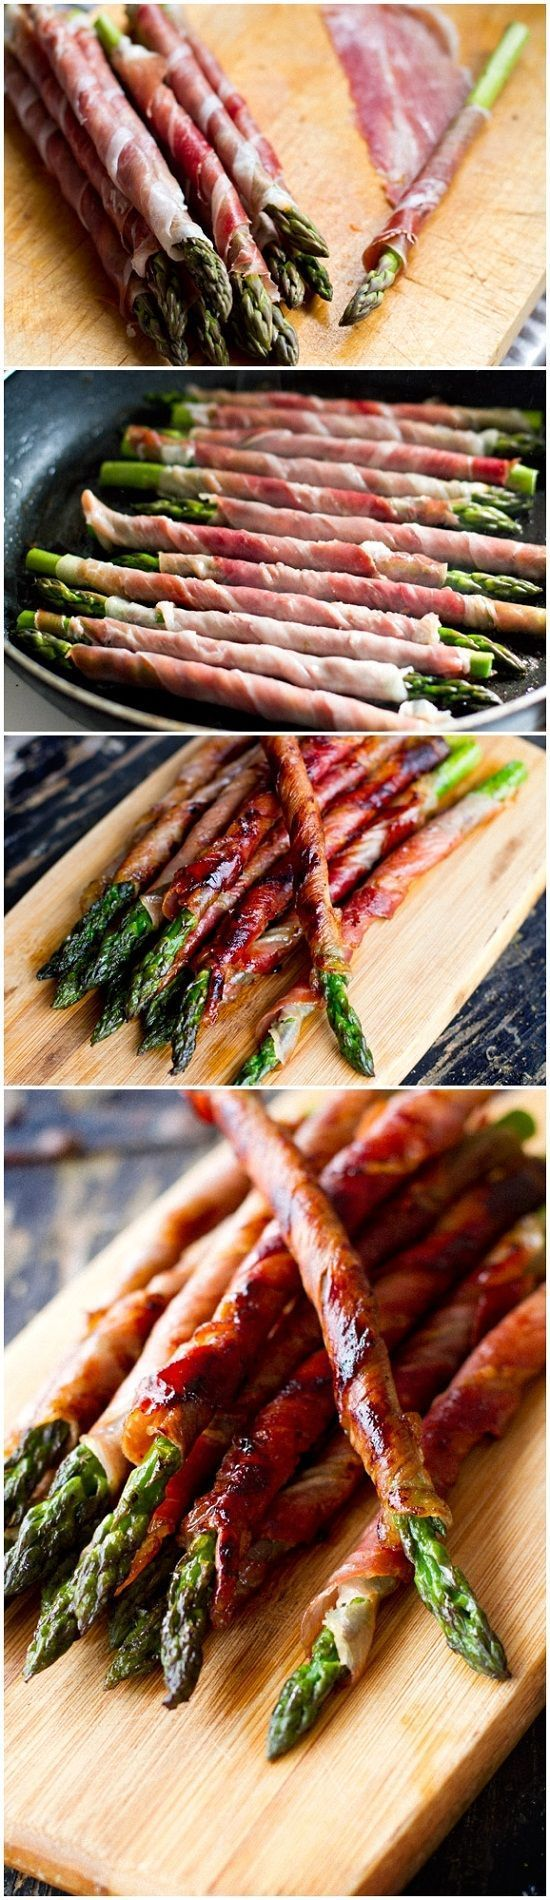 Prosciutto Wrapped AsparagusPrep Time: 15 minutesCook Time: 5 minutesServing Size: 12 spears  Ingredients     12 asparagus spears    6 prosciutto slices/strips (or turkey bacon)    A little ghee fo…